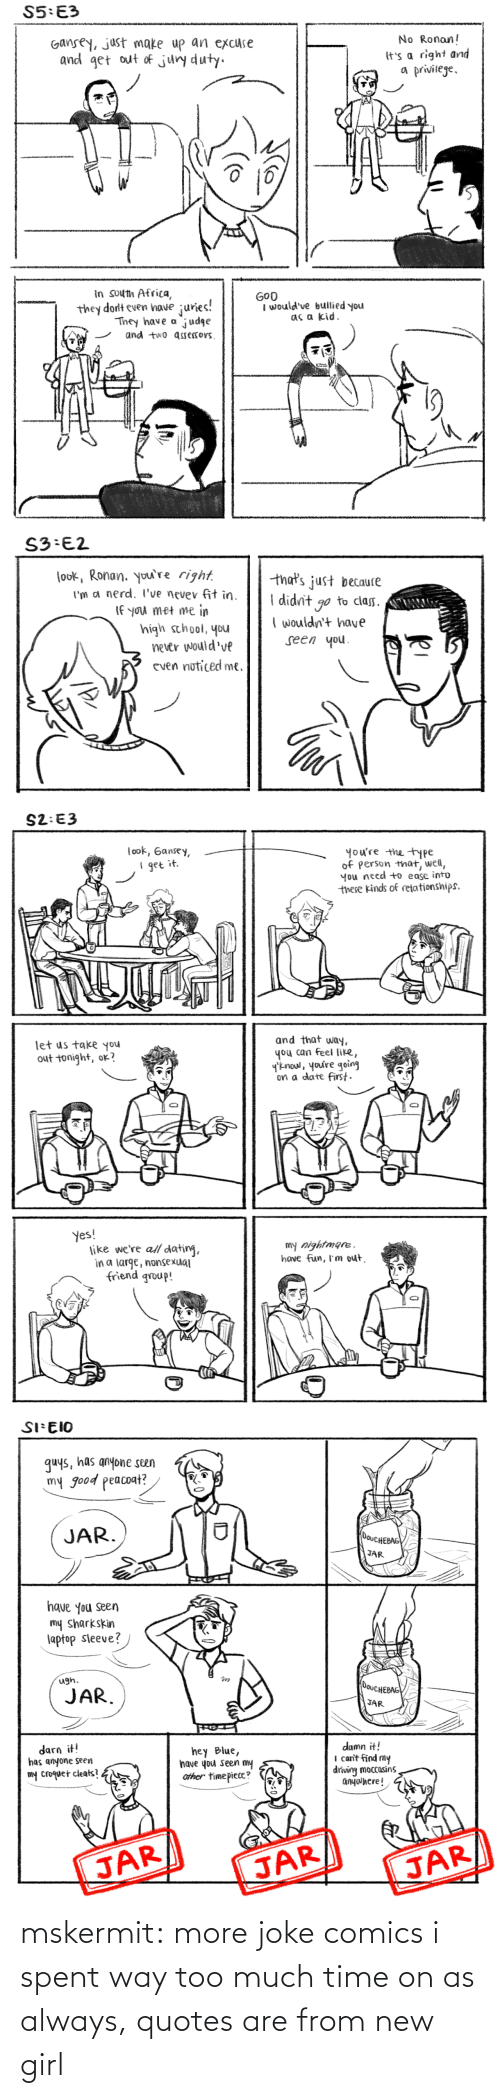 As Always: mskermit:  more joke comics i spent way too much time on as always, quotes are from new girl